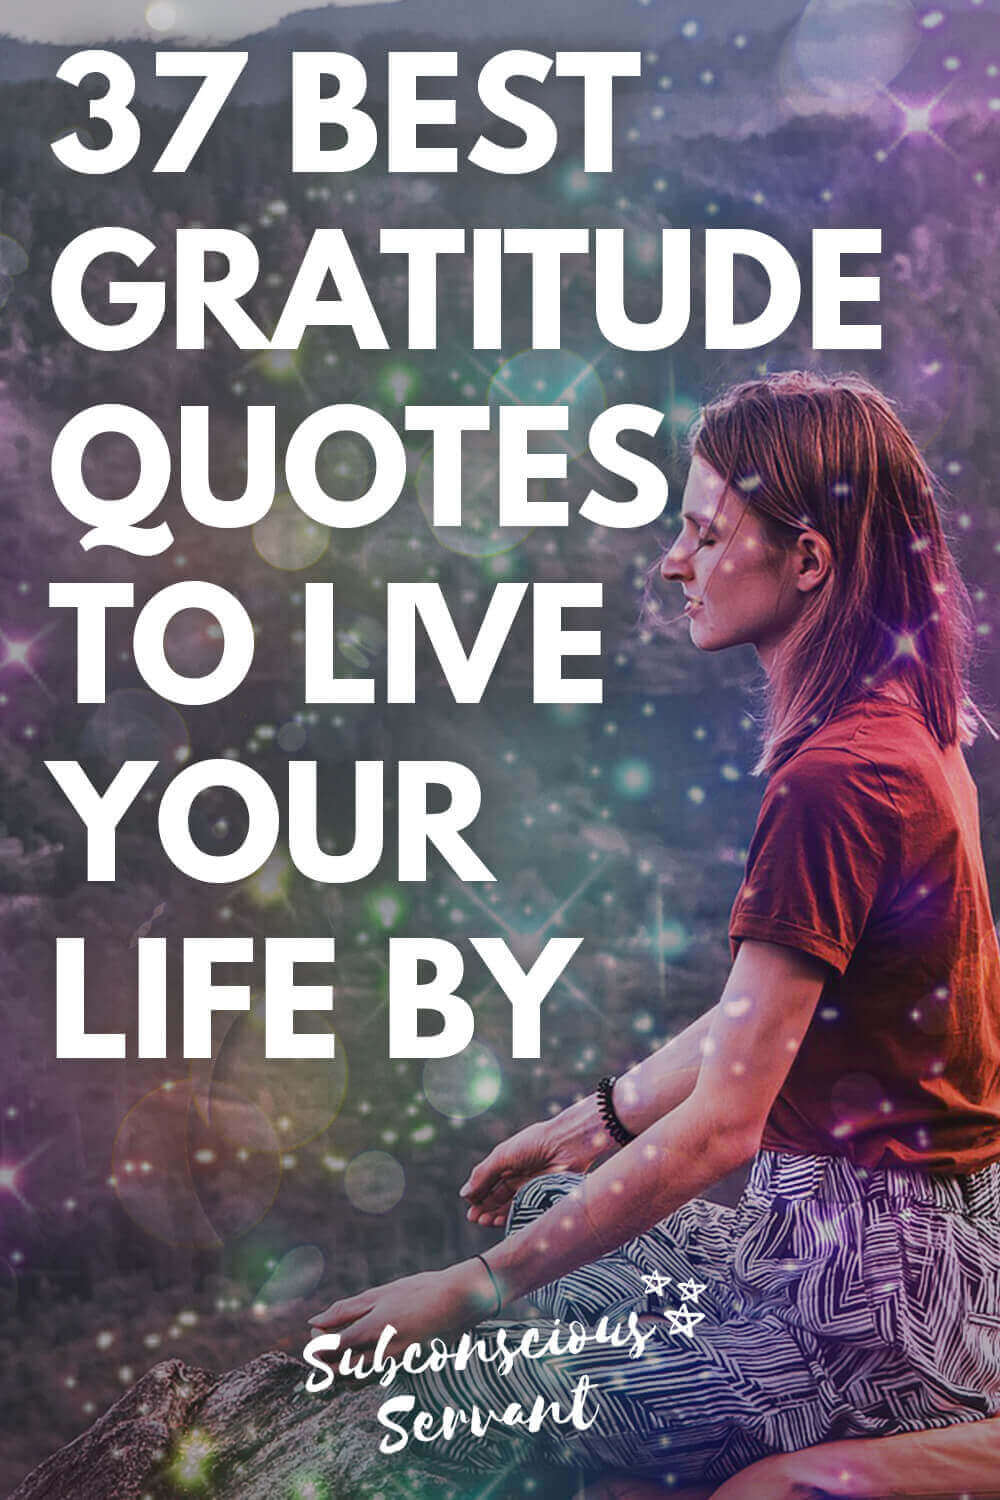 37 Best Gratitude Quotes To Live Your Life By